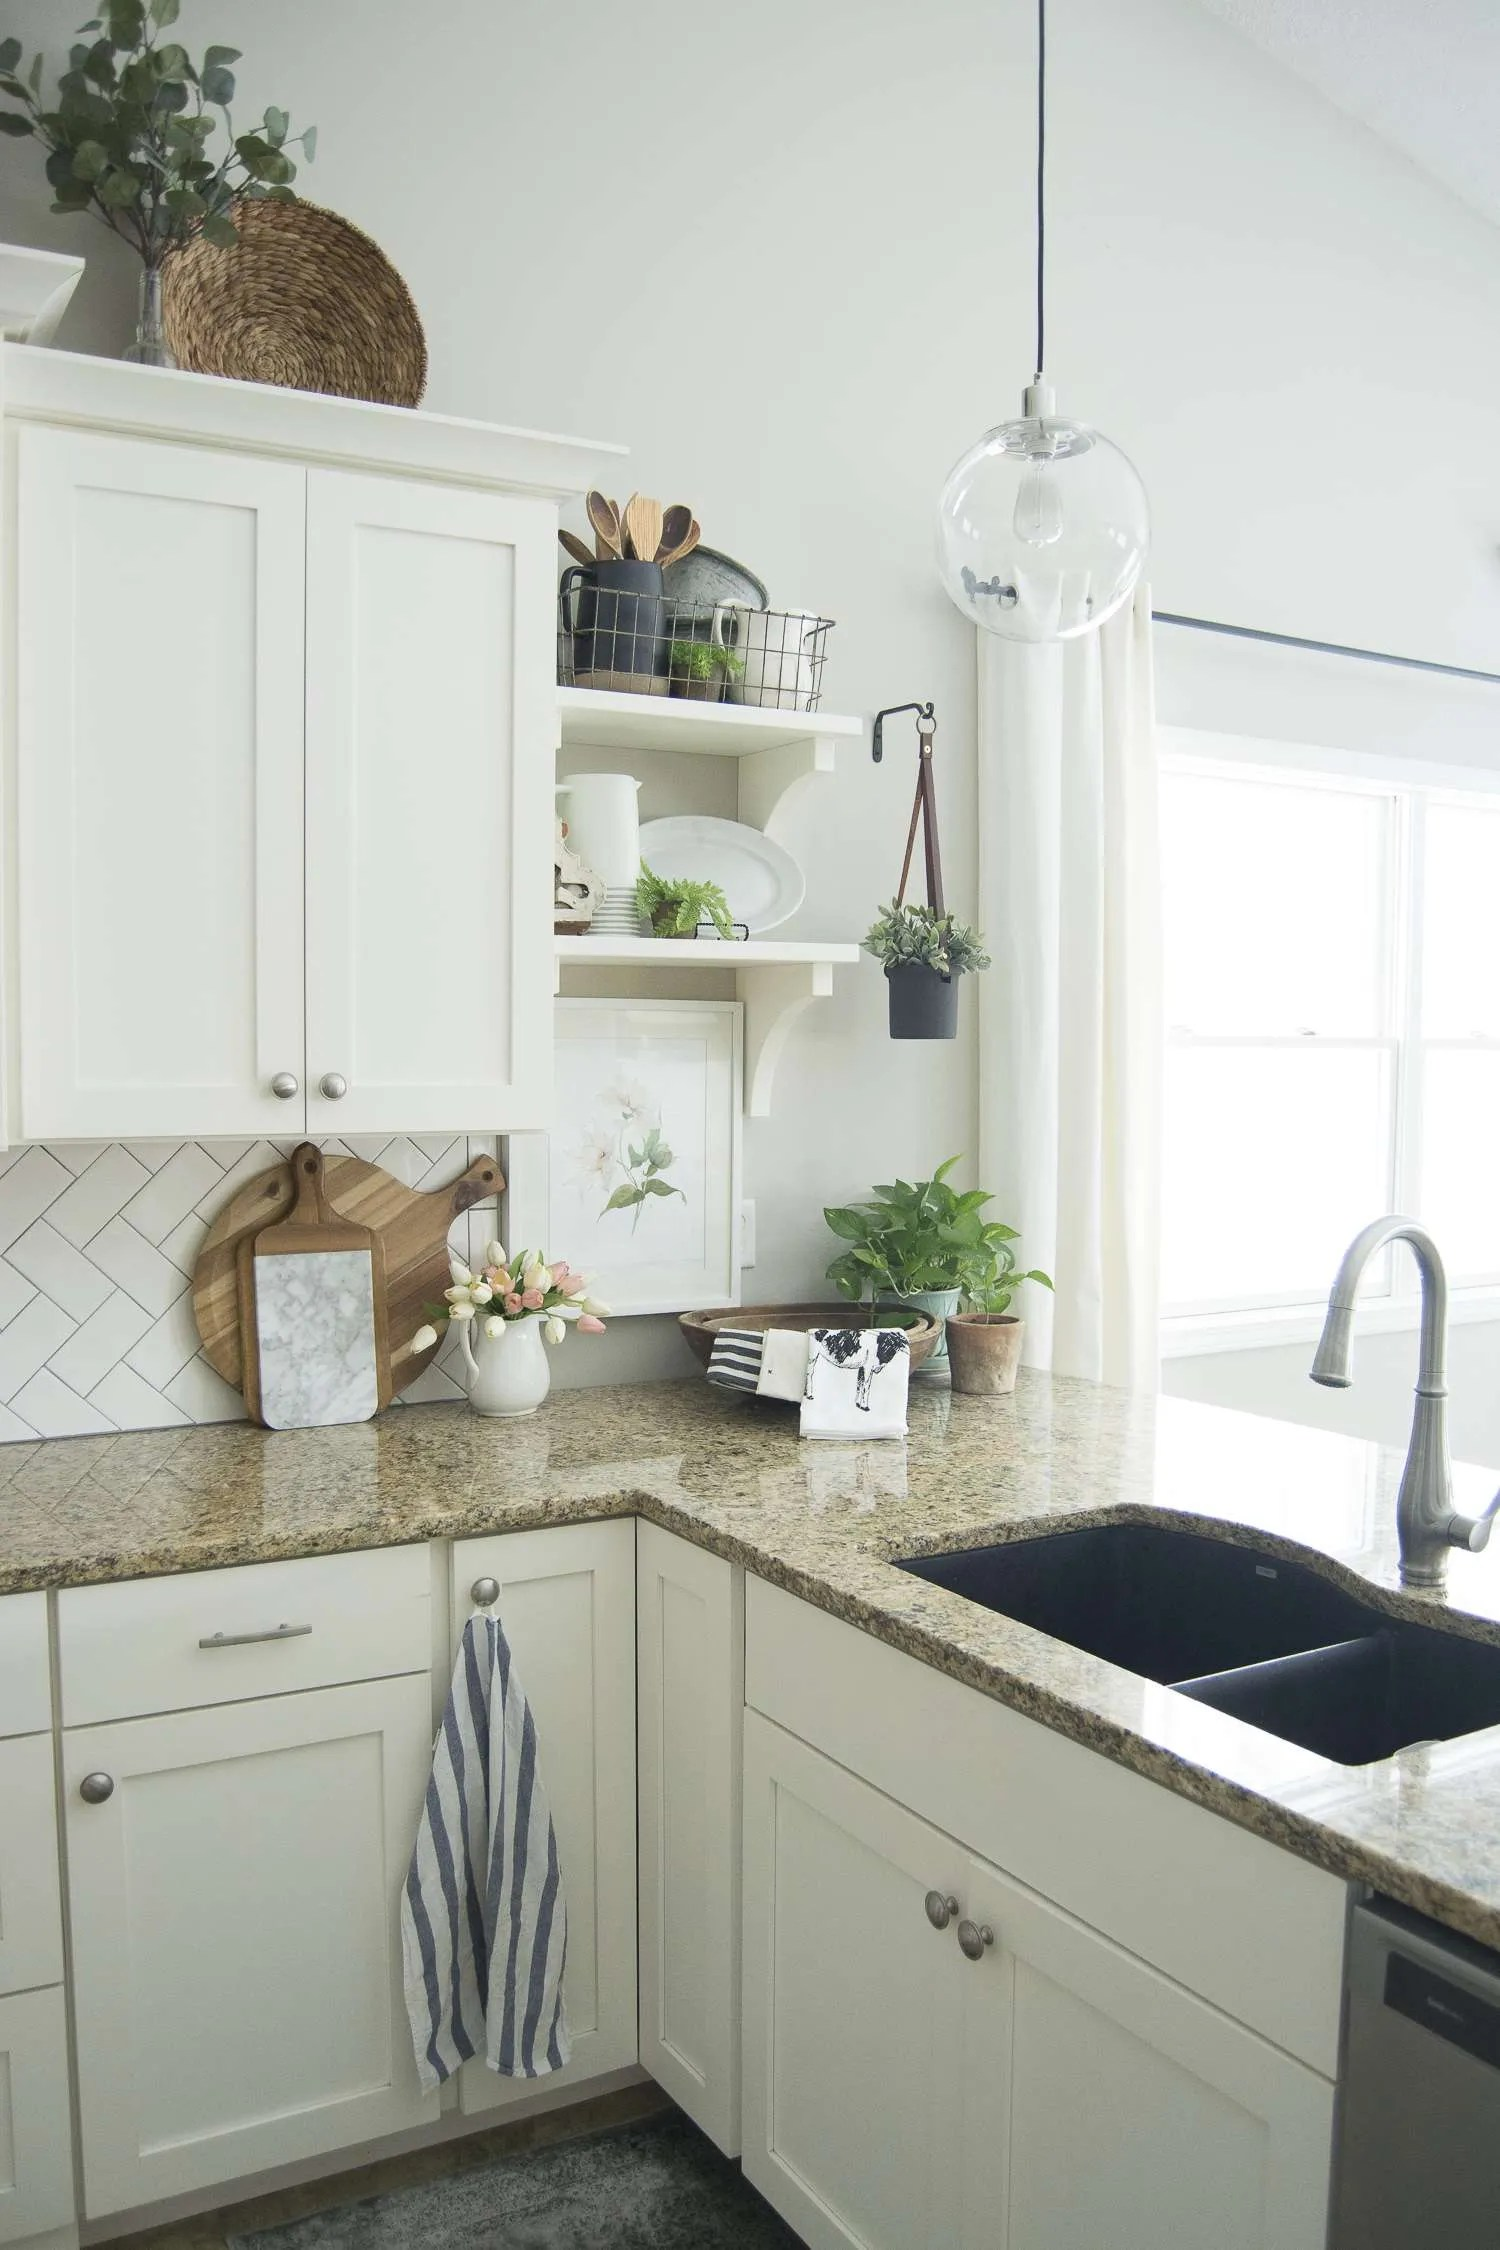 how to decorate your kitchen coffee bar in spring decor easy ways beautify